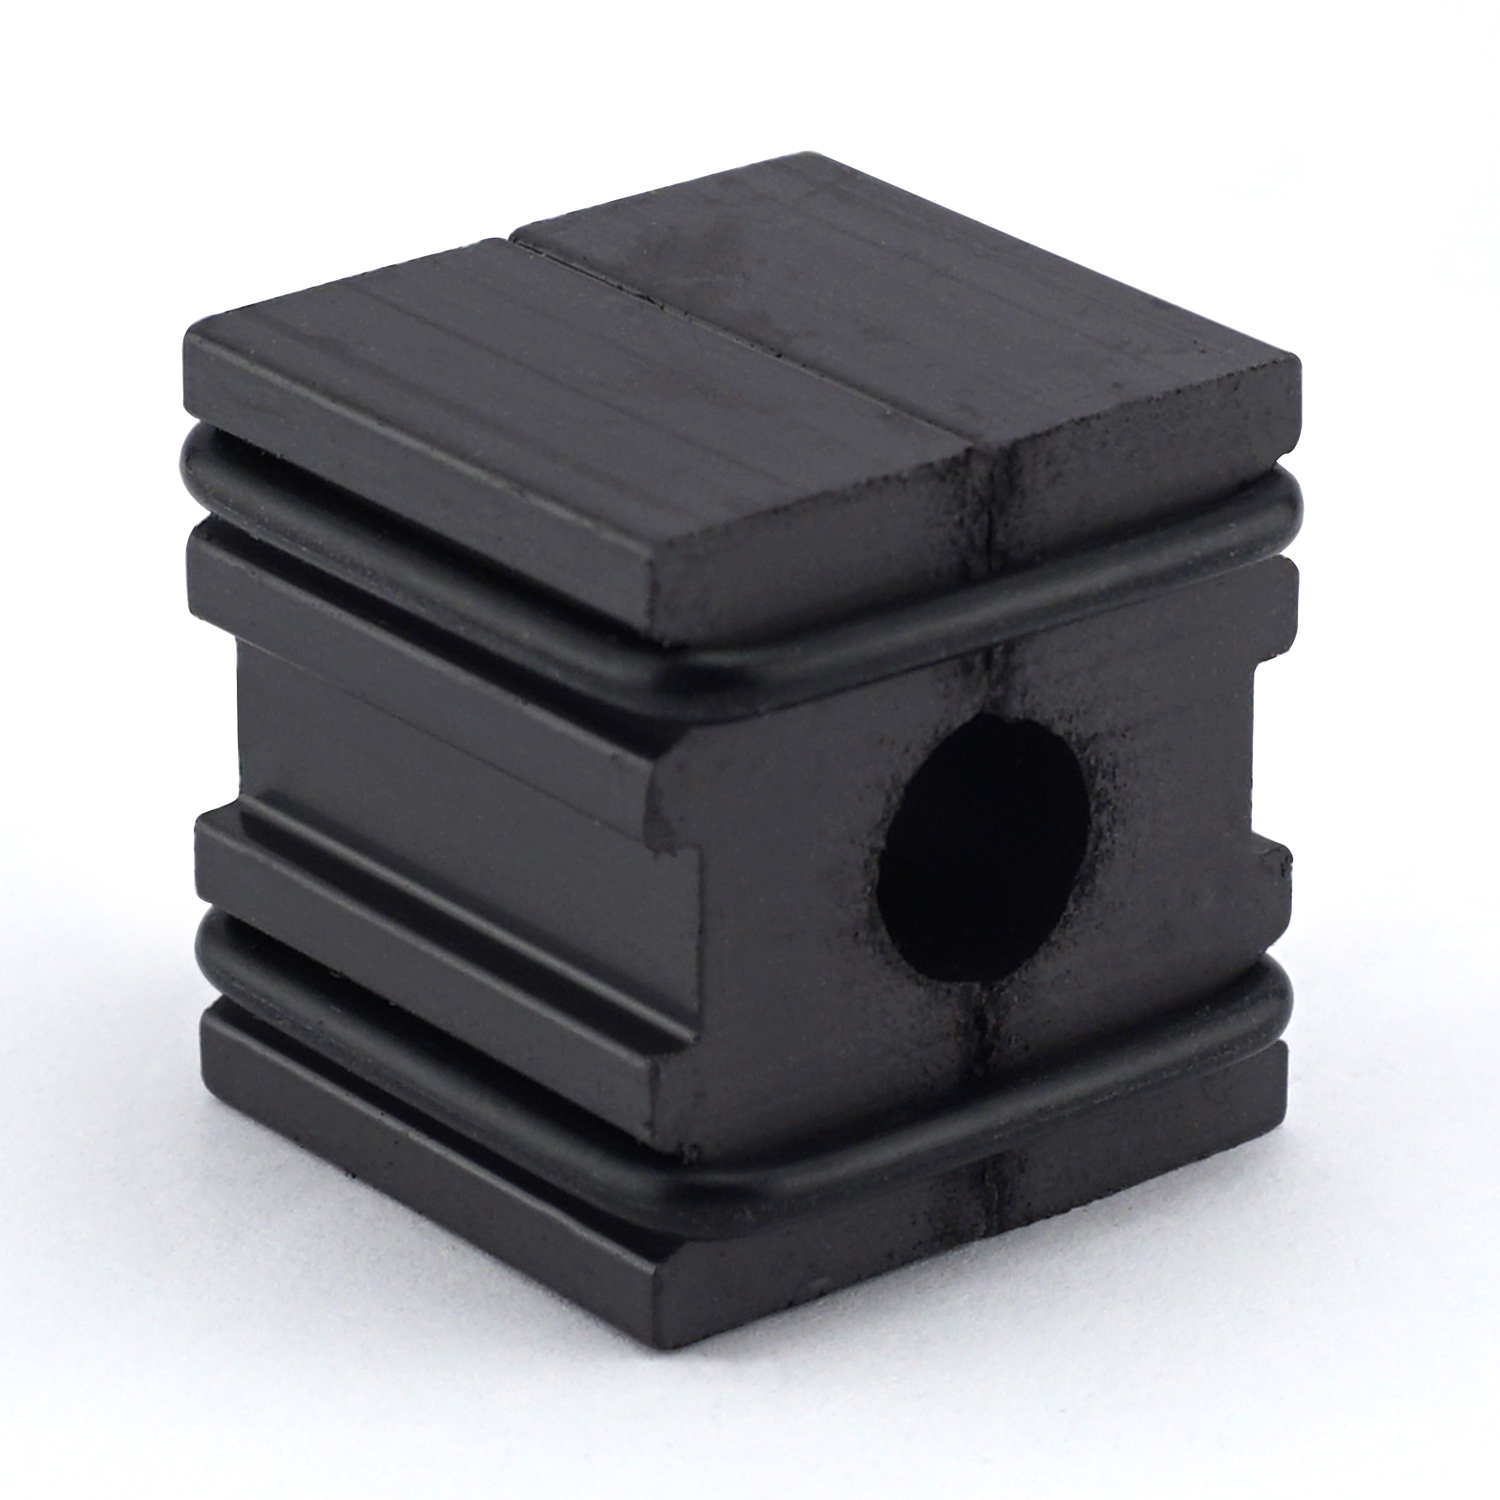 Master Magnetics  The Magnet Source  1 in. Ferrite Powder/Rubber Polymer Resin  Magnetizer  Black  1